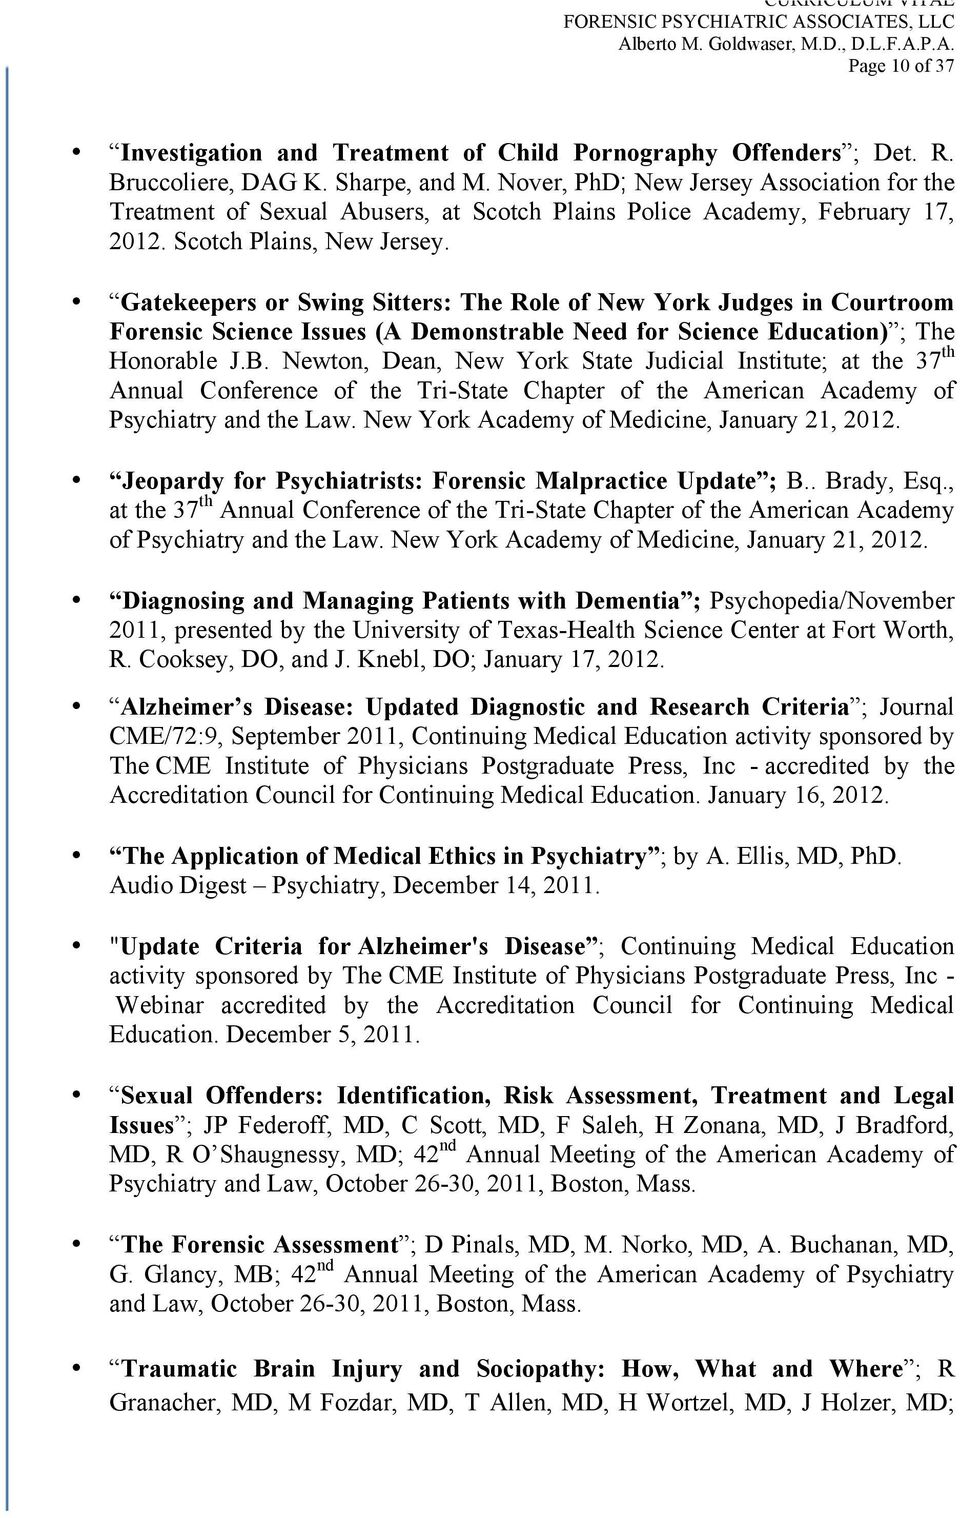 Gatekeepers or Swing Sitters: The Role of New York Judges in Courtroom Forensic Science Issues (A Demonstrable Need for Science Education) ; The Honorable J.B.